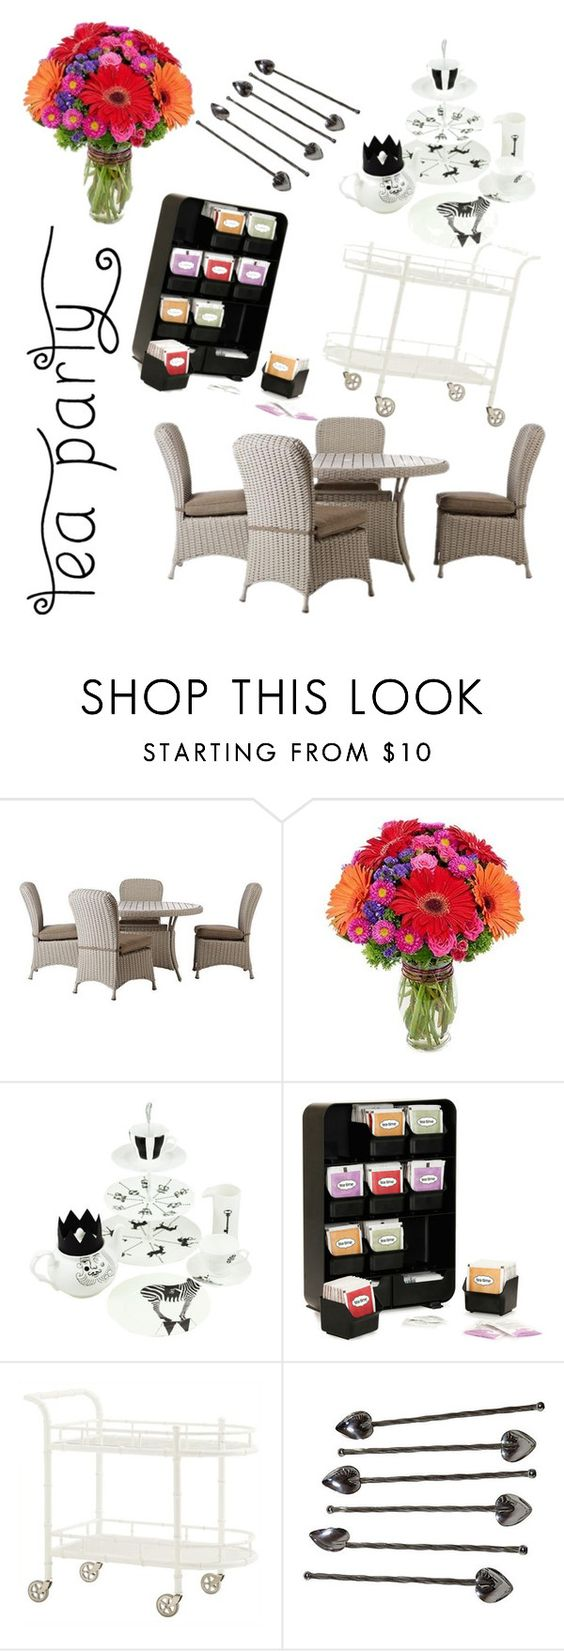 """""""Tea Party Contest Entry"""" by skylar-j-ramsay ❤ liked on Polyvore featuring interior, interiors, interior design, home, home decor, interior decorating, Home Decorators Collection, Mind Reader, contest and teaparty"""